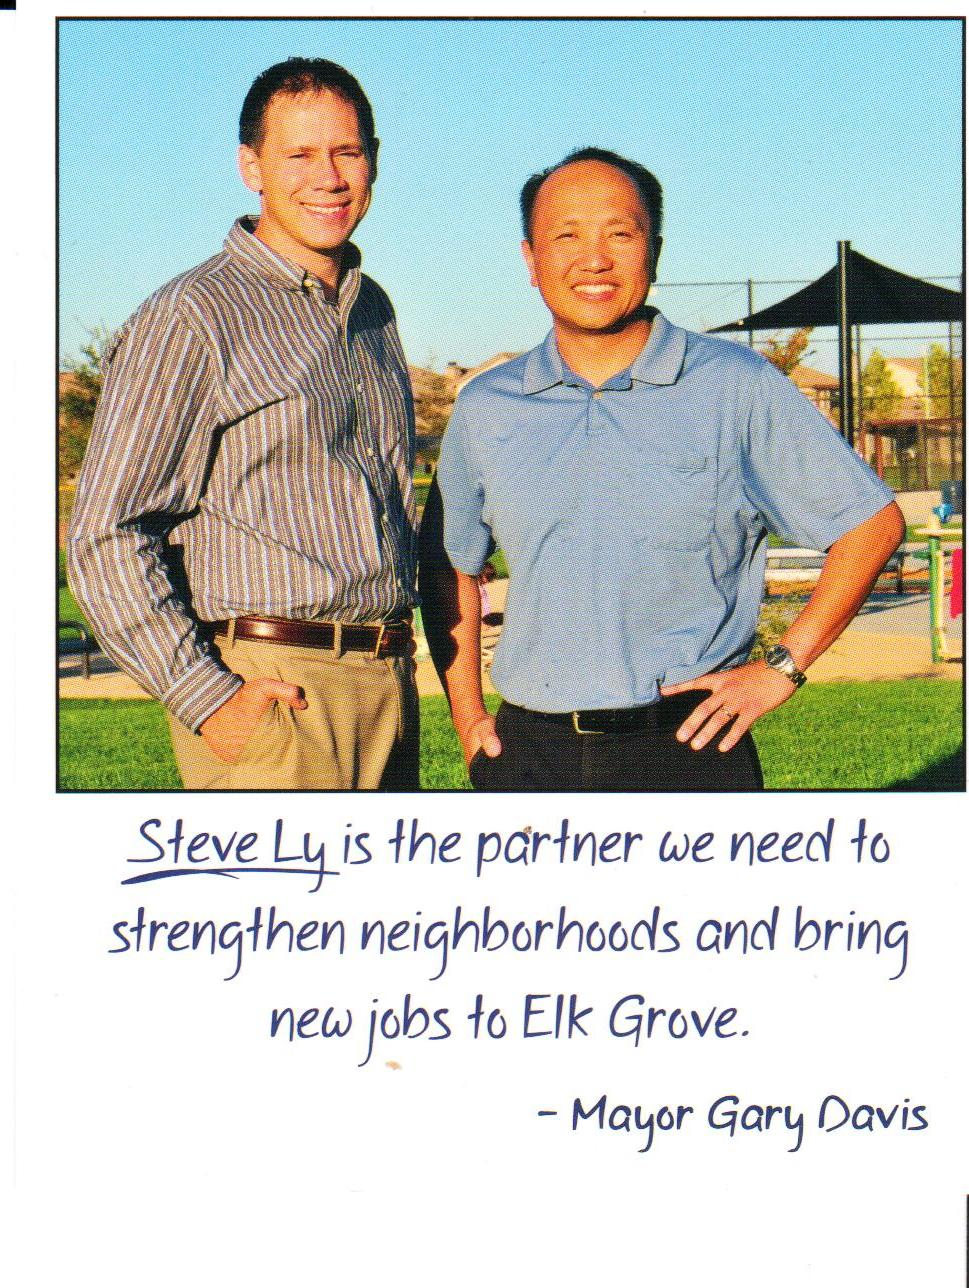 Video: Our View – Are Davis, Ly's Elk Grove Job Promises Realistic?